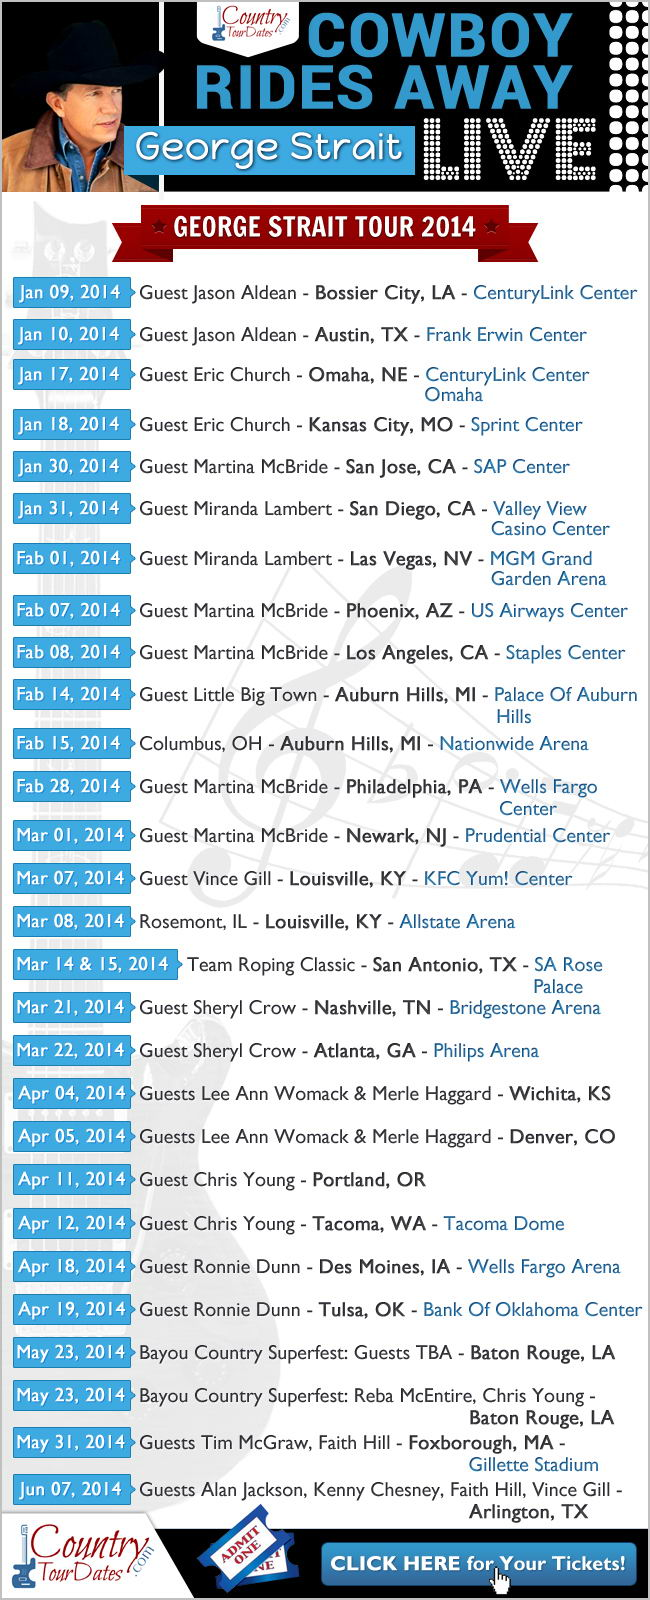 George Strait Tour Dates 2014